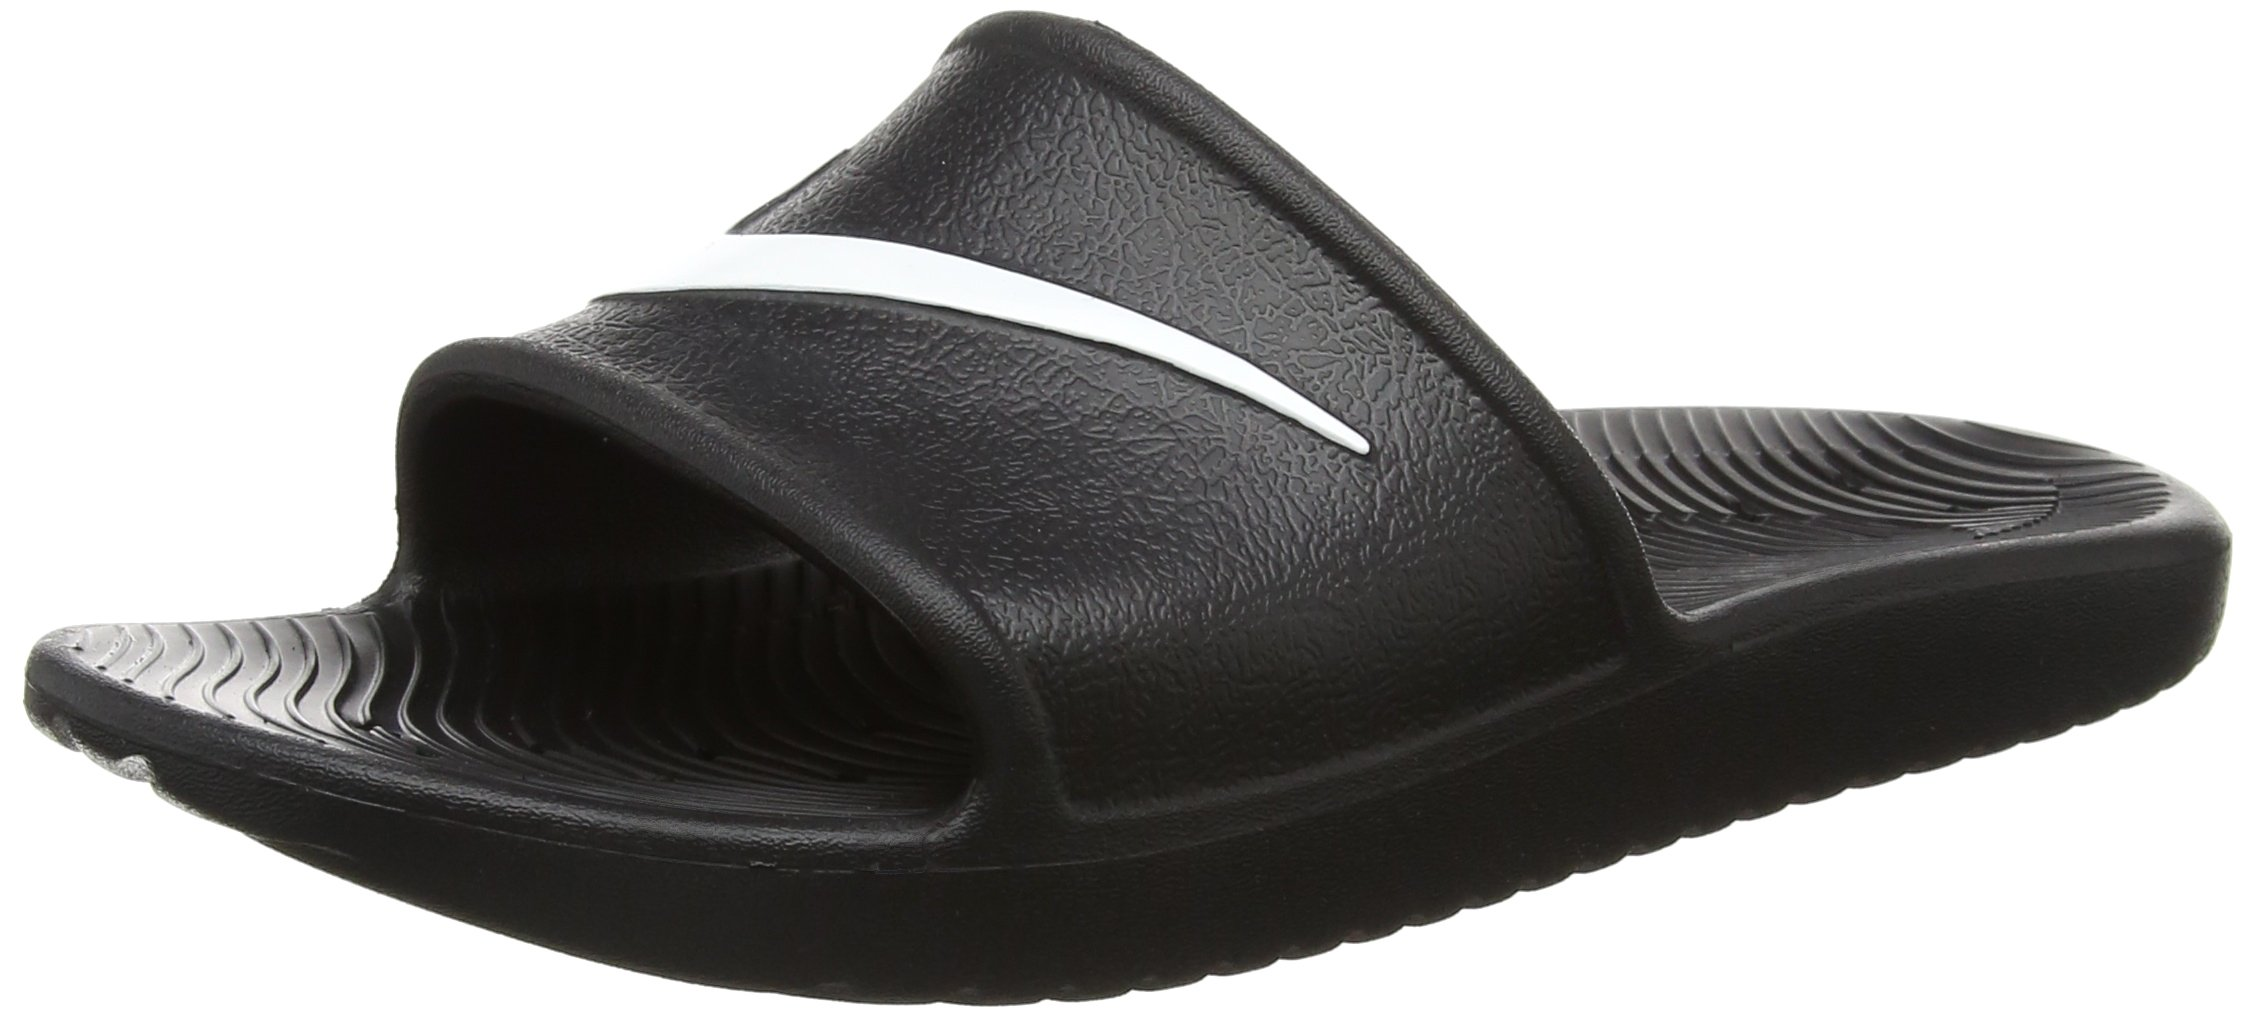 Nike Kawa Shower Slide Sandals Black/White Men's Size 10